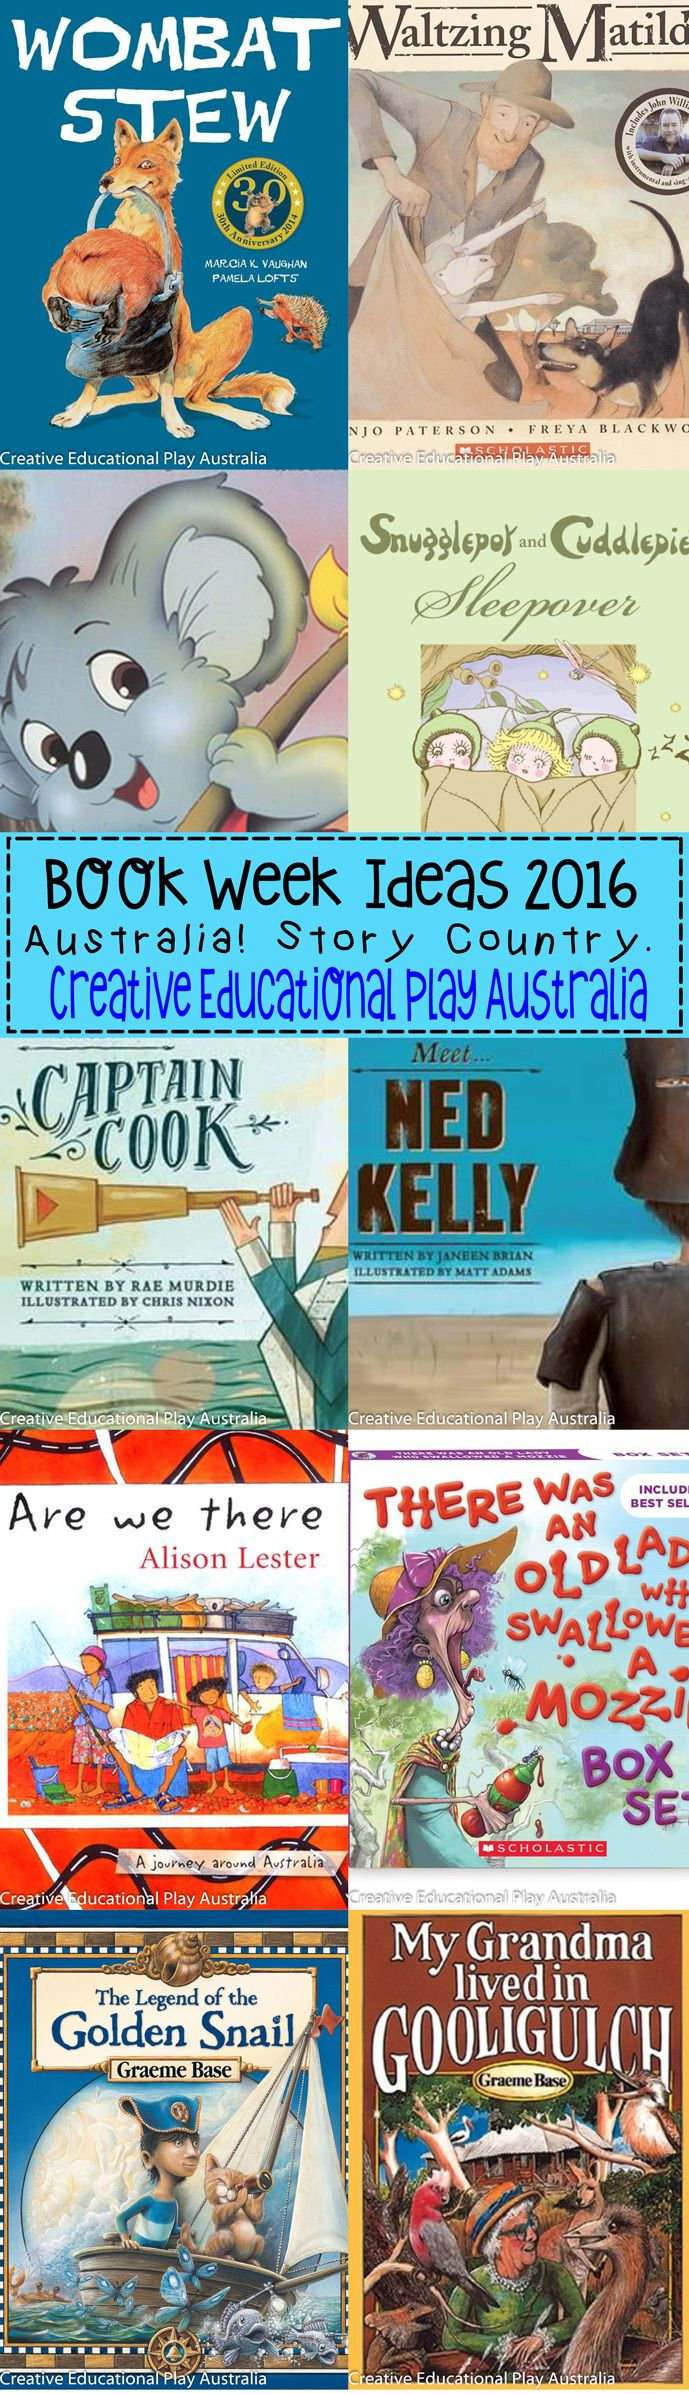 book week ideas 2016 Story country